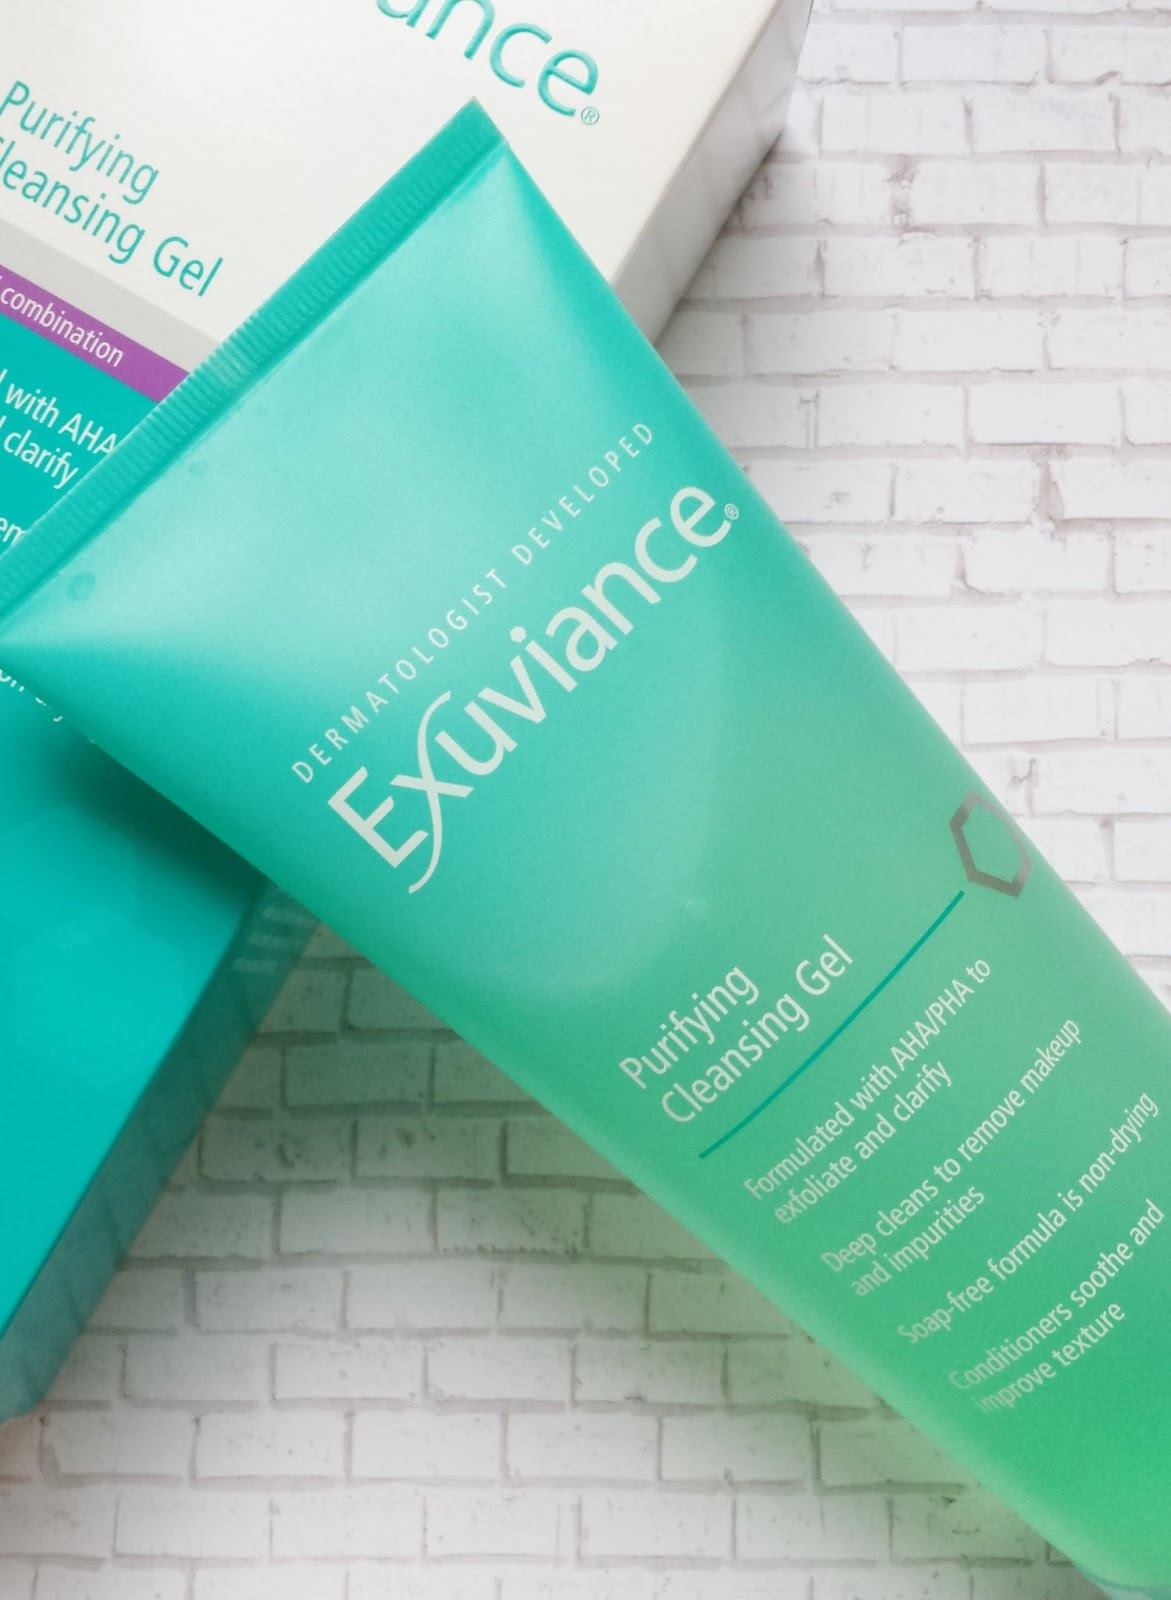 Exuviance Purifying Cleansing Gel Review